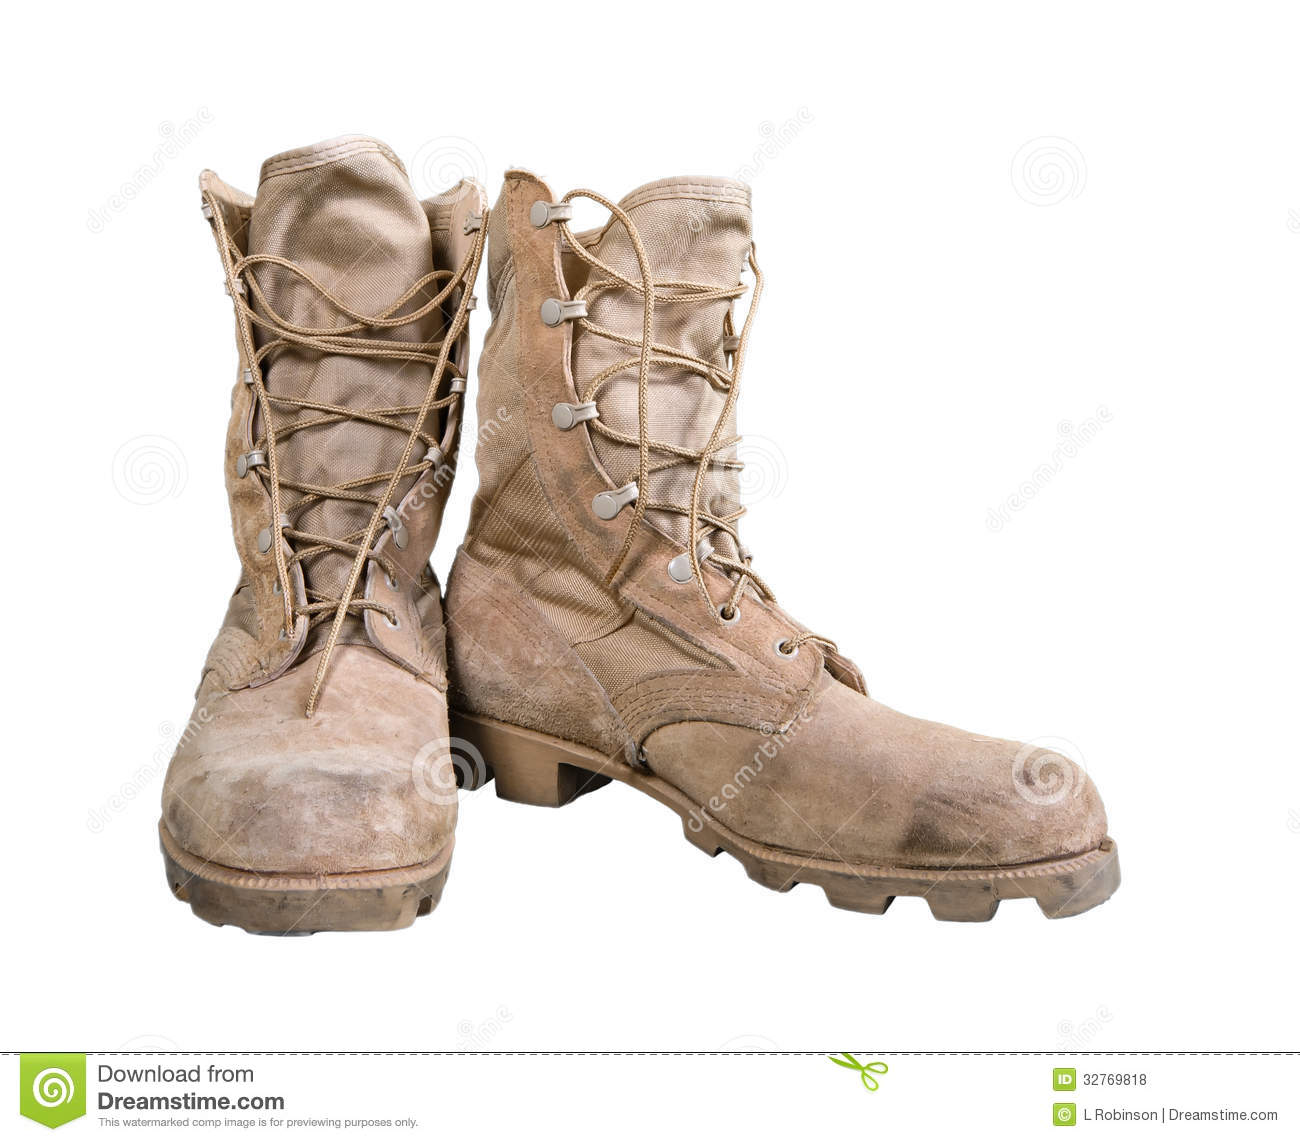 clipart of military boots - photo #24